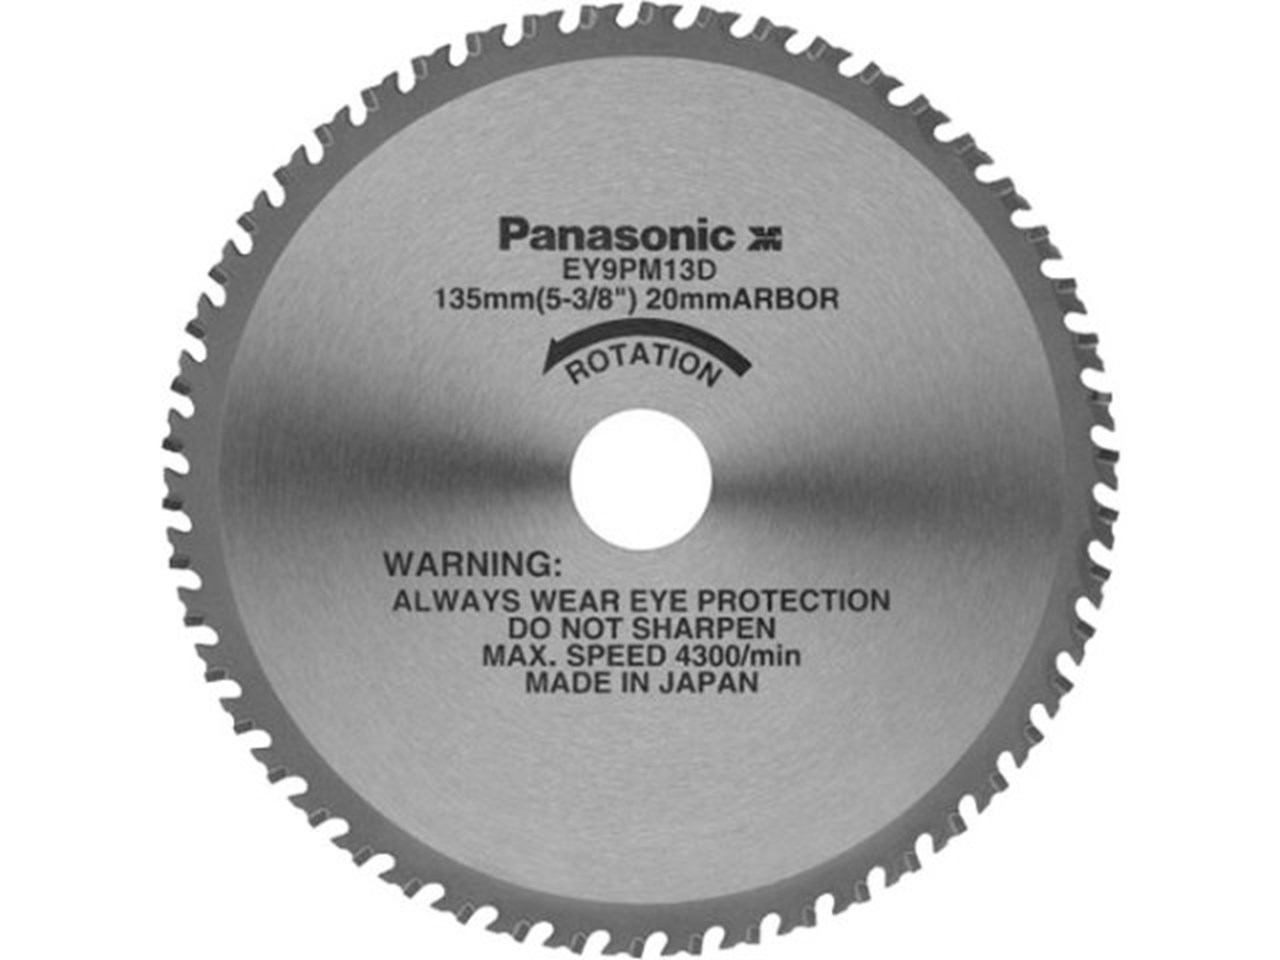 Panasonic ey9pm13f 135mm circular saw blade for metal 50t greentooth Image collections